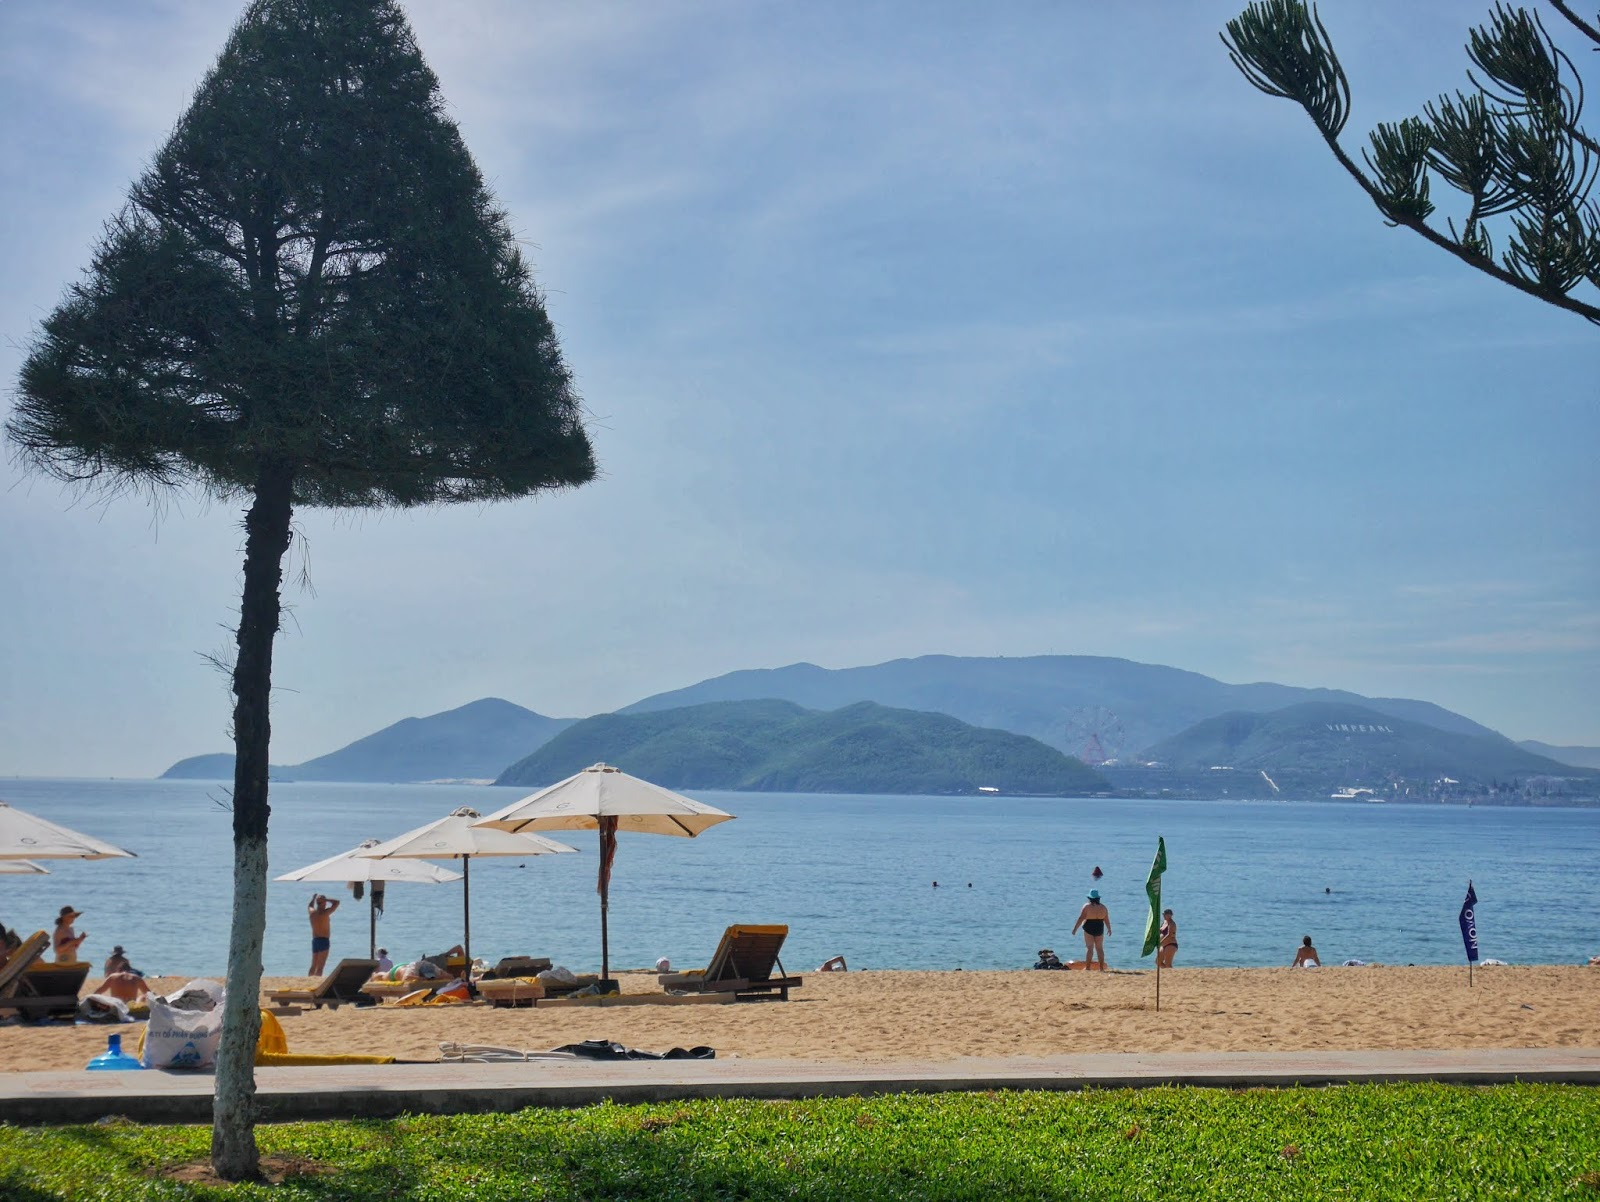 the beach in Nha Trang, Vietnam